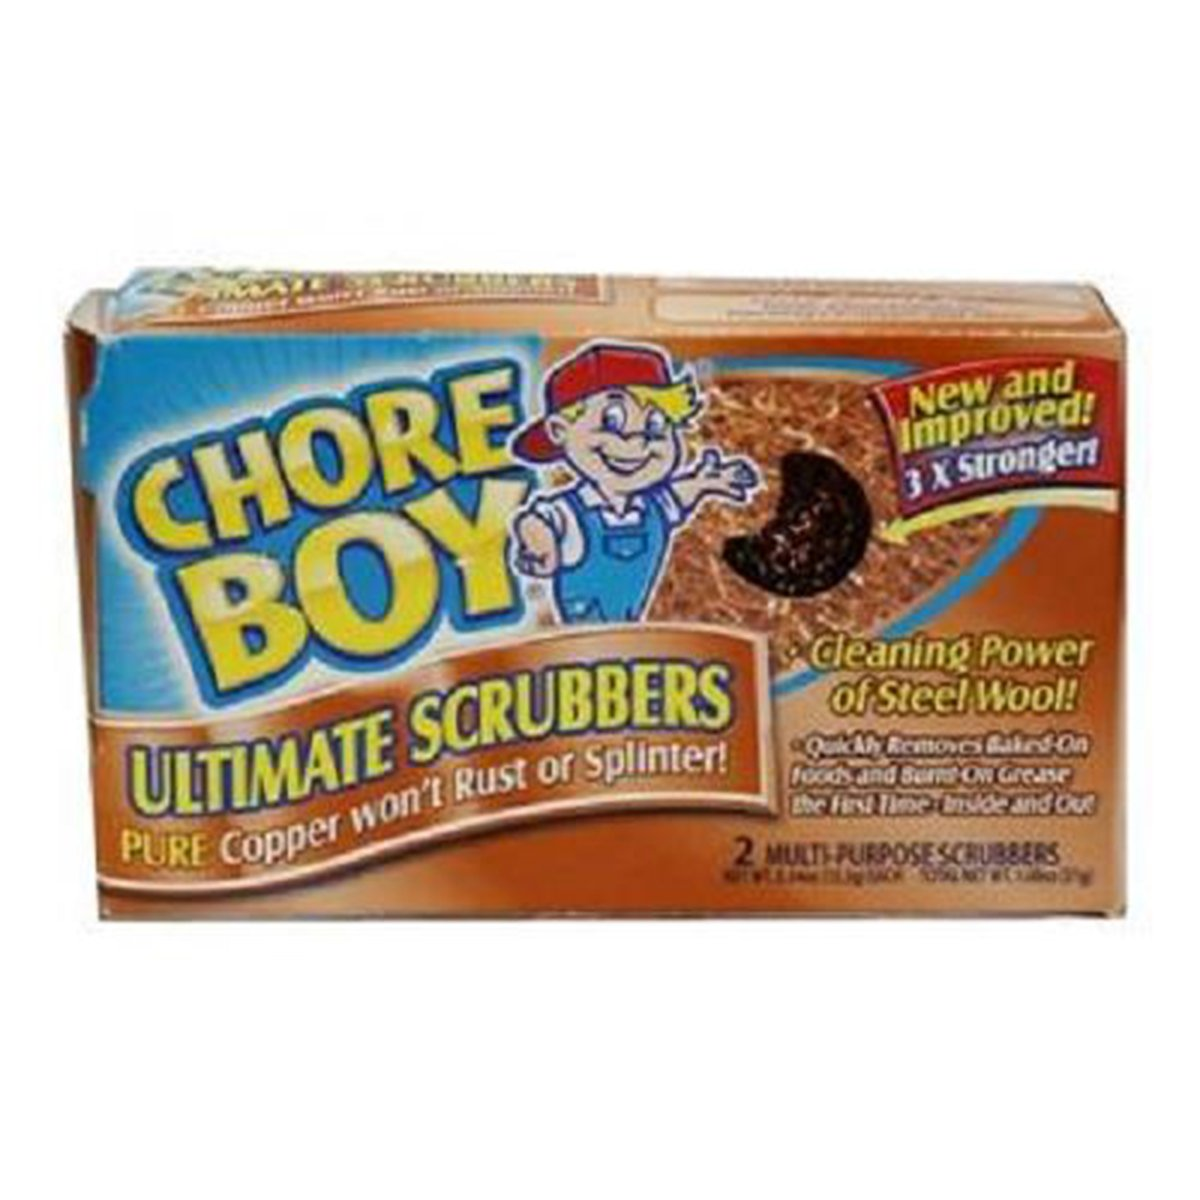 Product Of Chore Boy, Copper Scrubbers - Box, Count 36 - Sponges & Cleaning Pads / Grab Varieties & Flavors